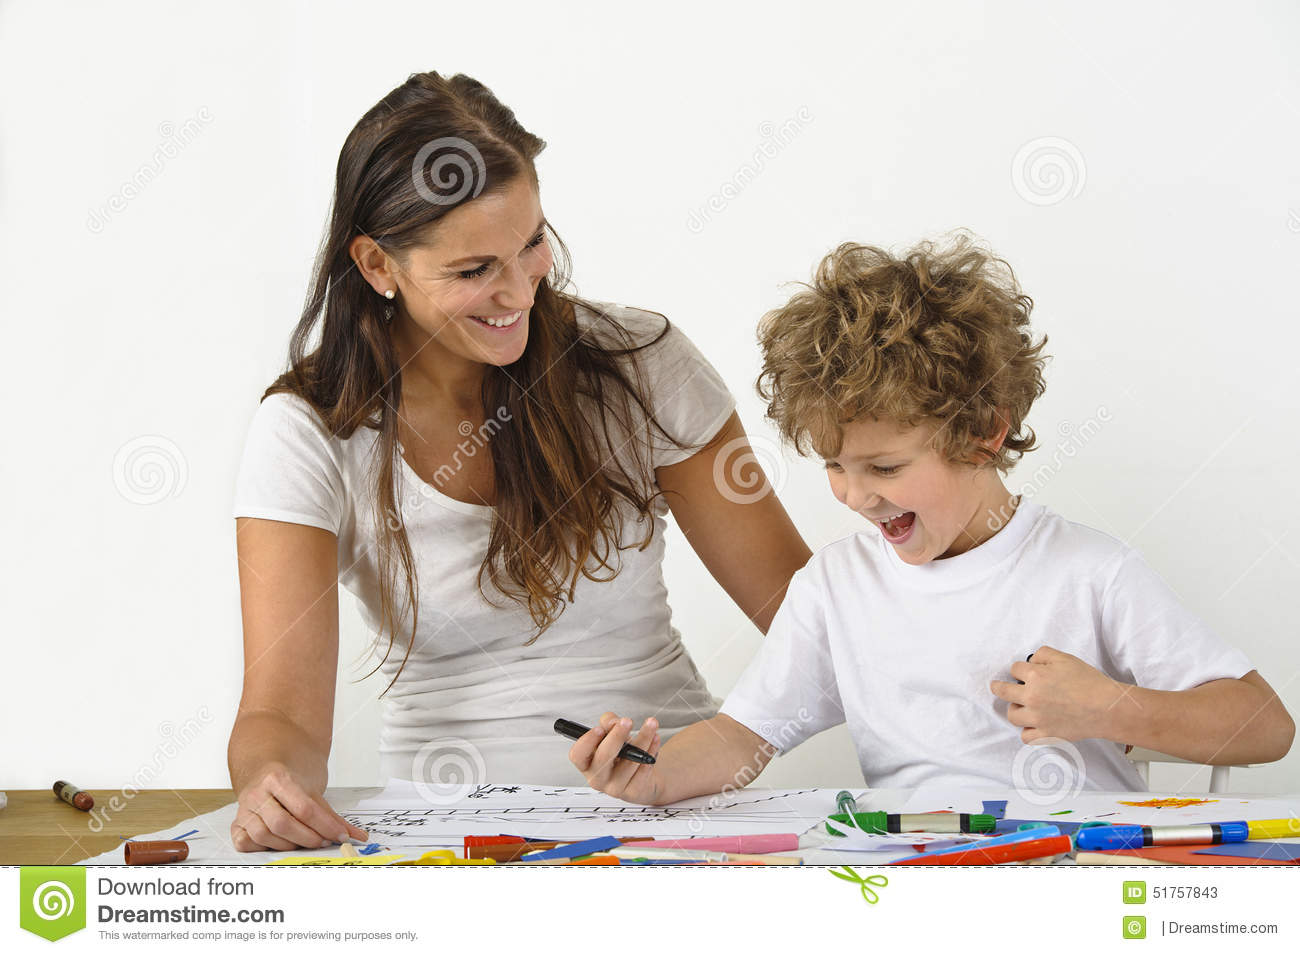 Woman teaches her child how to draw